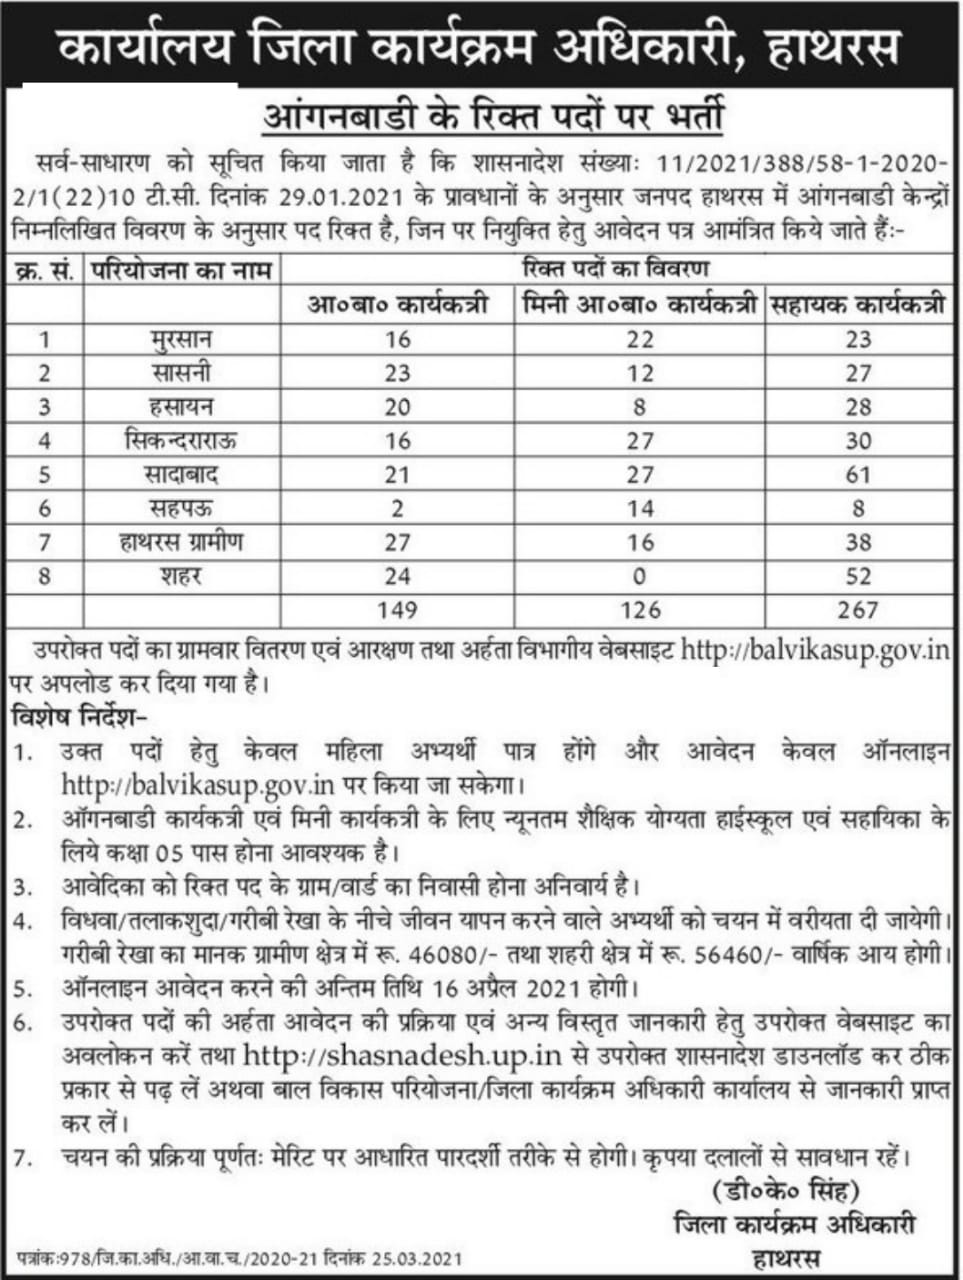 UP ICDS 2041 Anganwadi Worker/ सहायक Bharti 2021- UPICDS Anganwadi Worker, Mini Anganwadi Worker, and Assistant Recruitment 2021 6